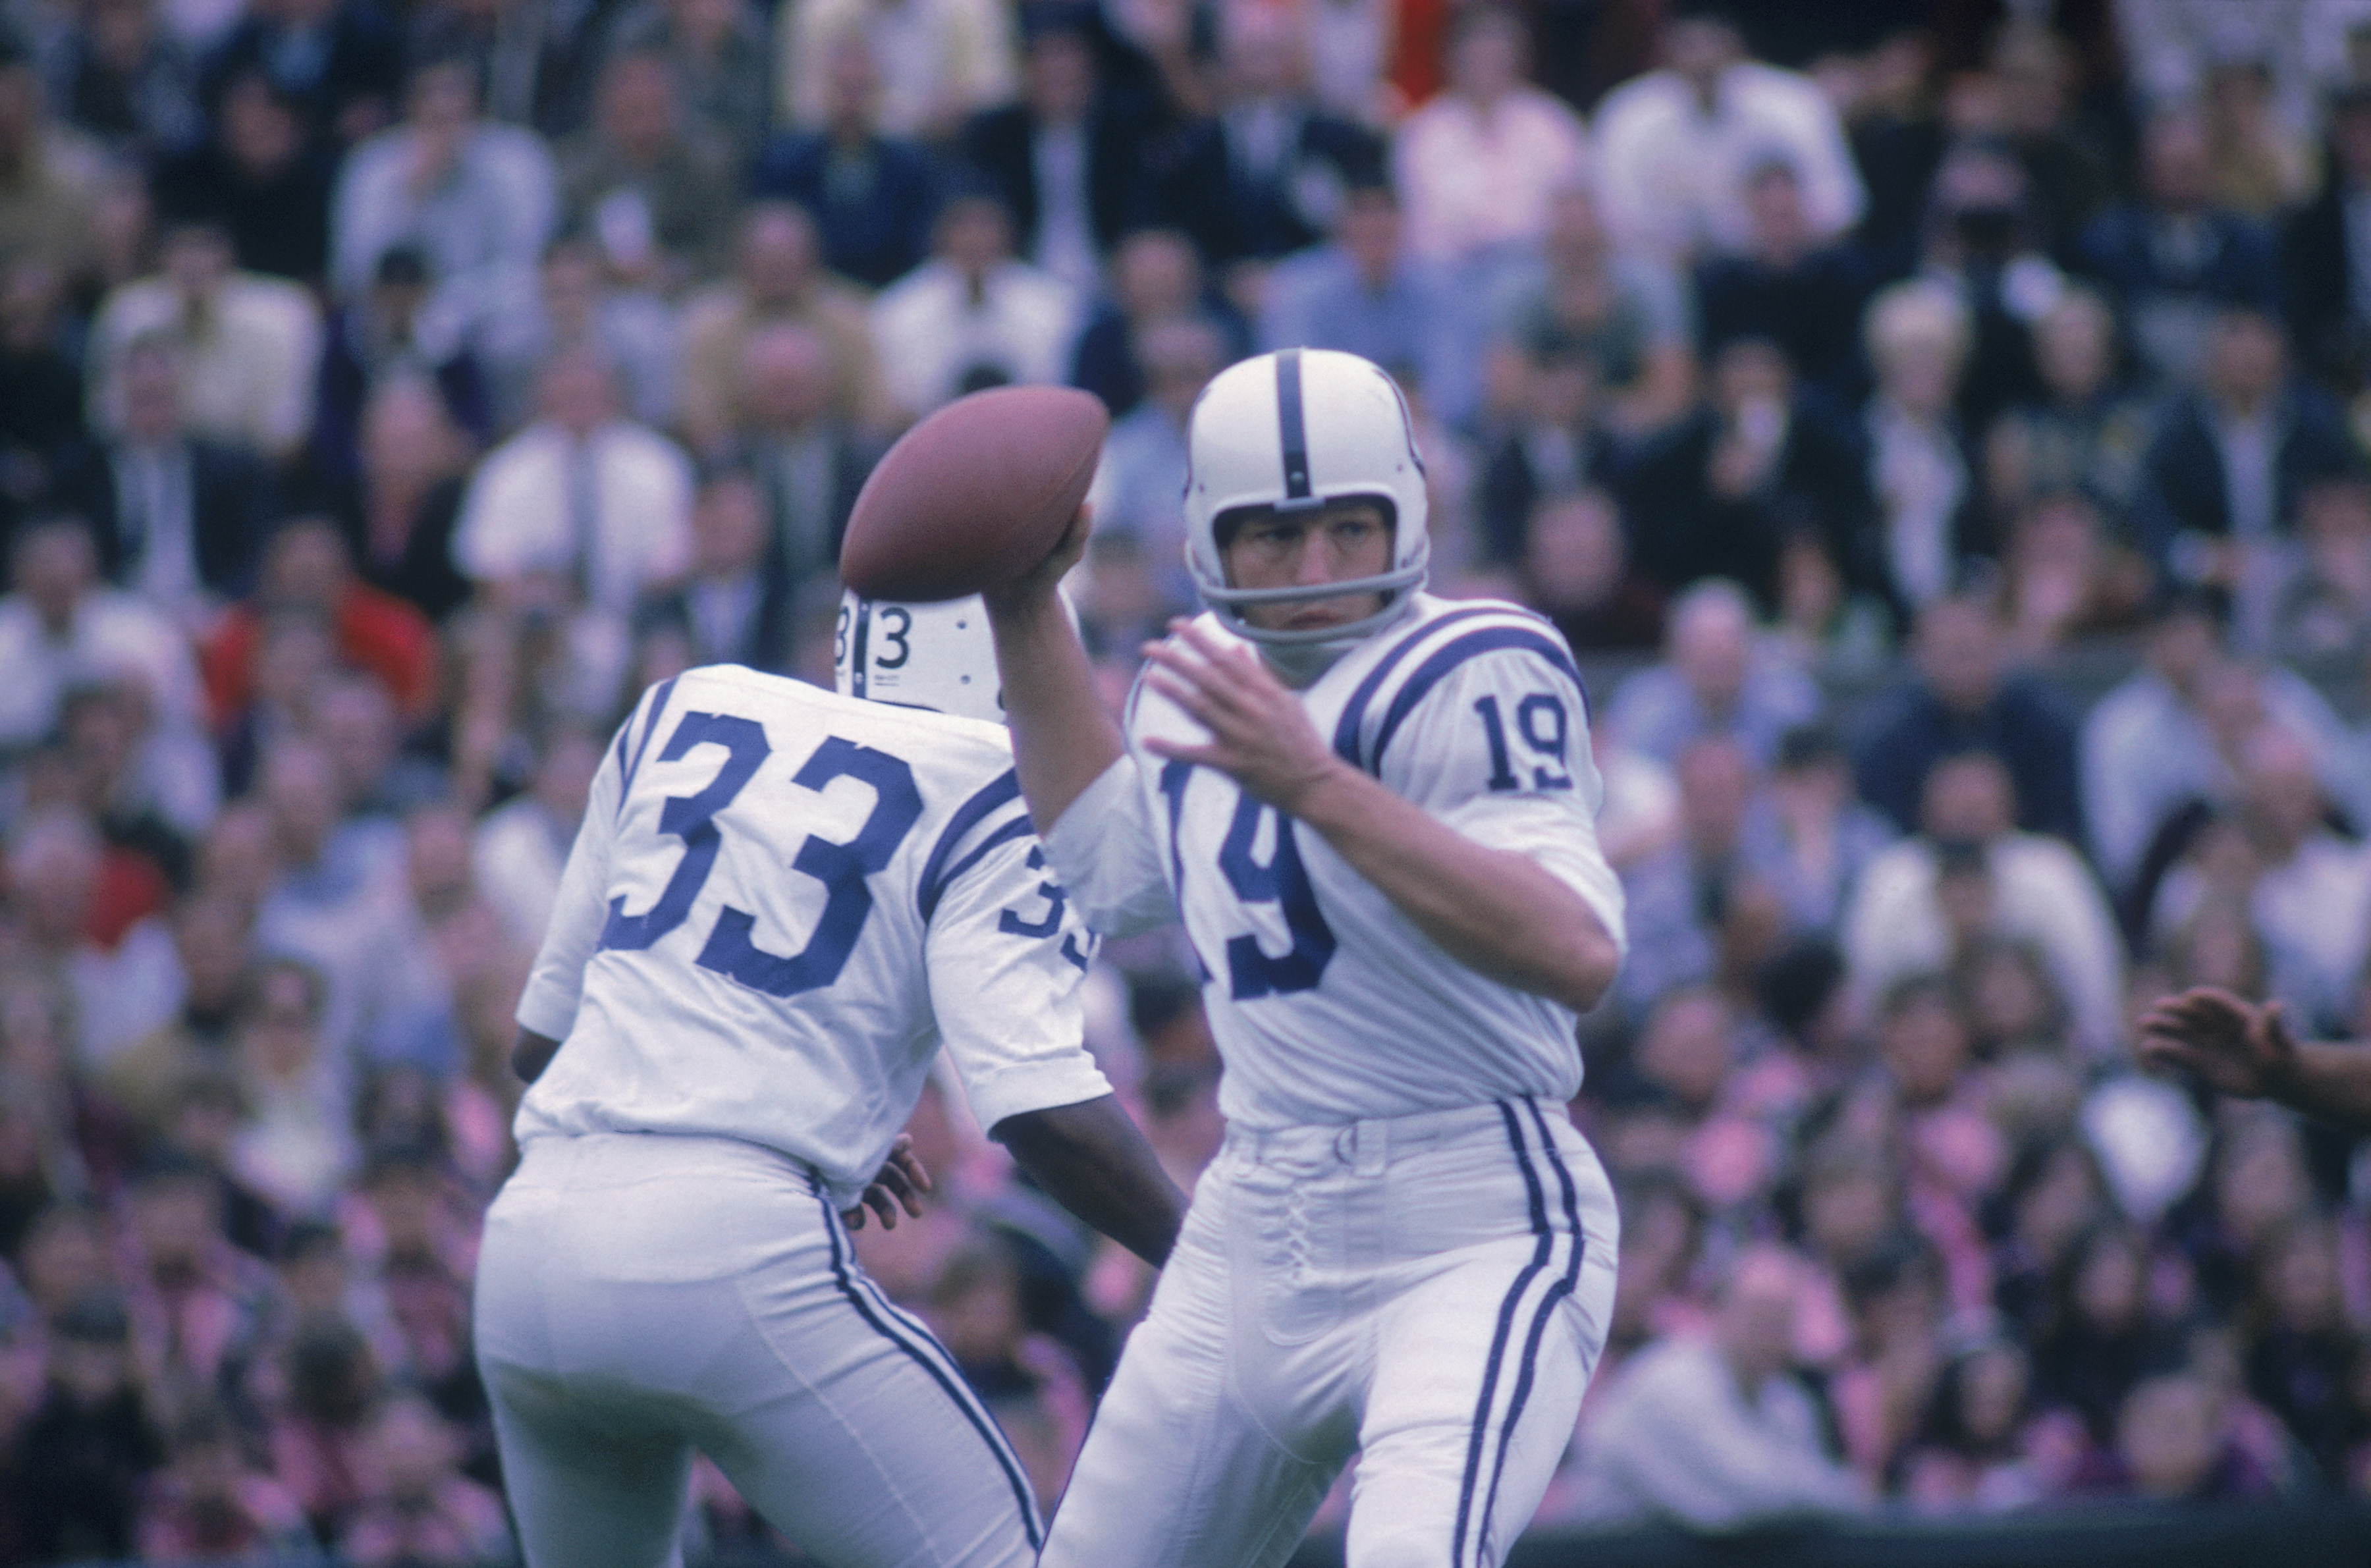 Johnny Unitas throwing a pass